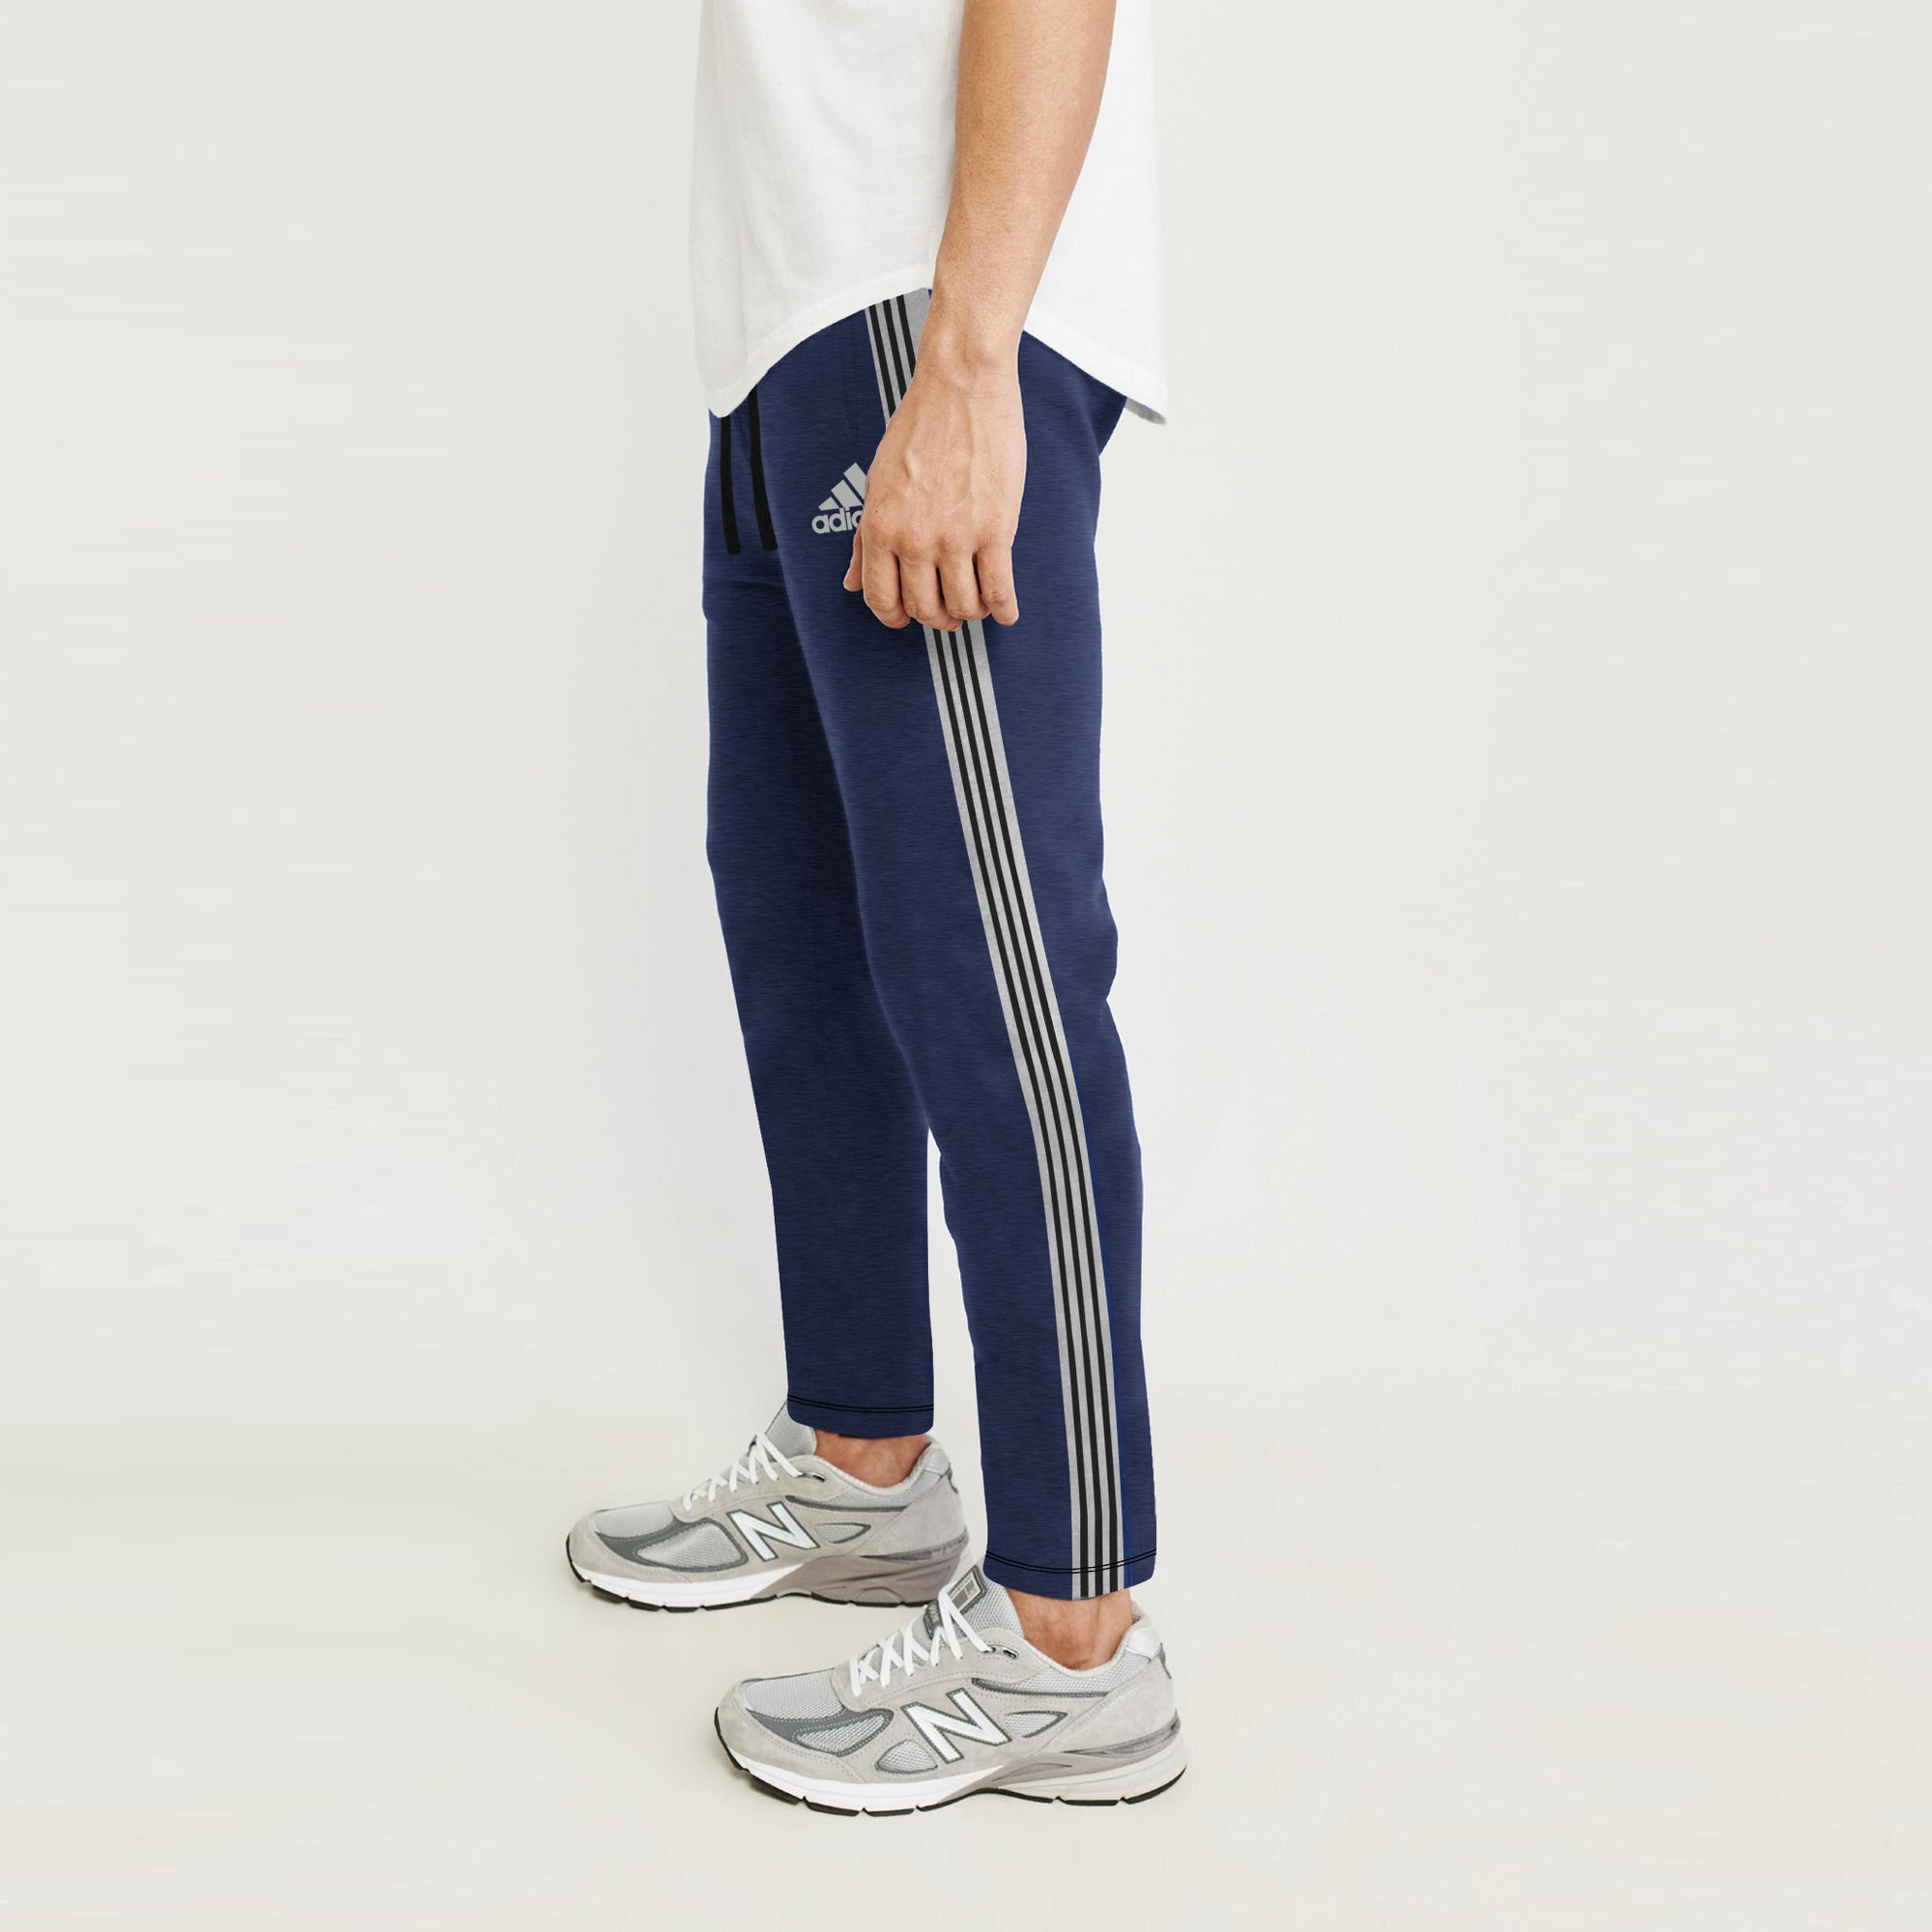 Adidas Single Jersey Regular Fit Jogger Trouser For Men-Navy Melange With Grey & Black Stripe-BE8790